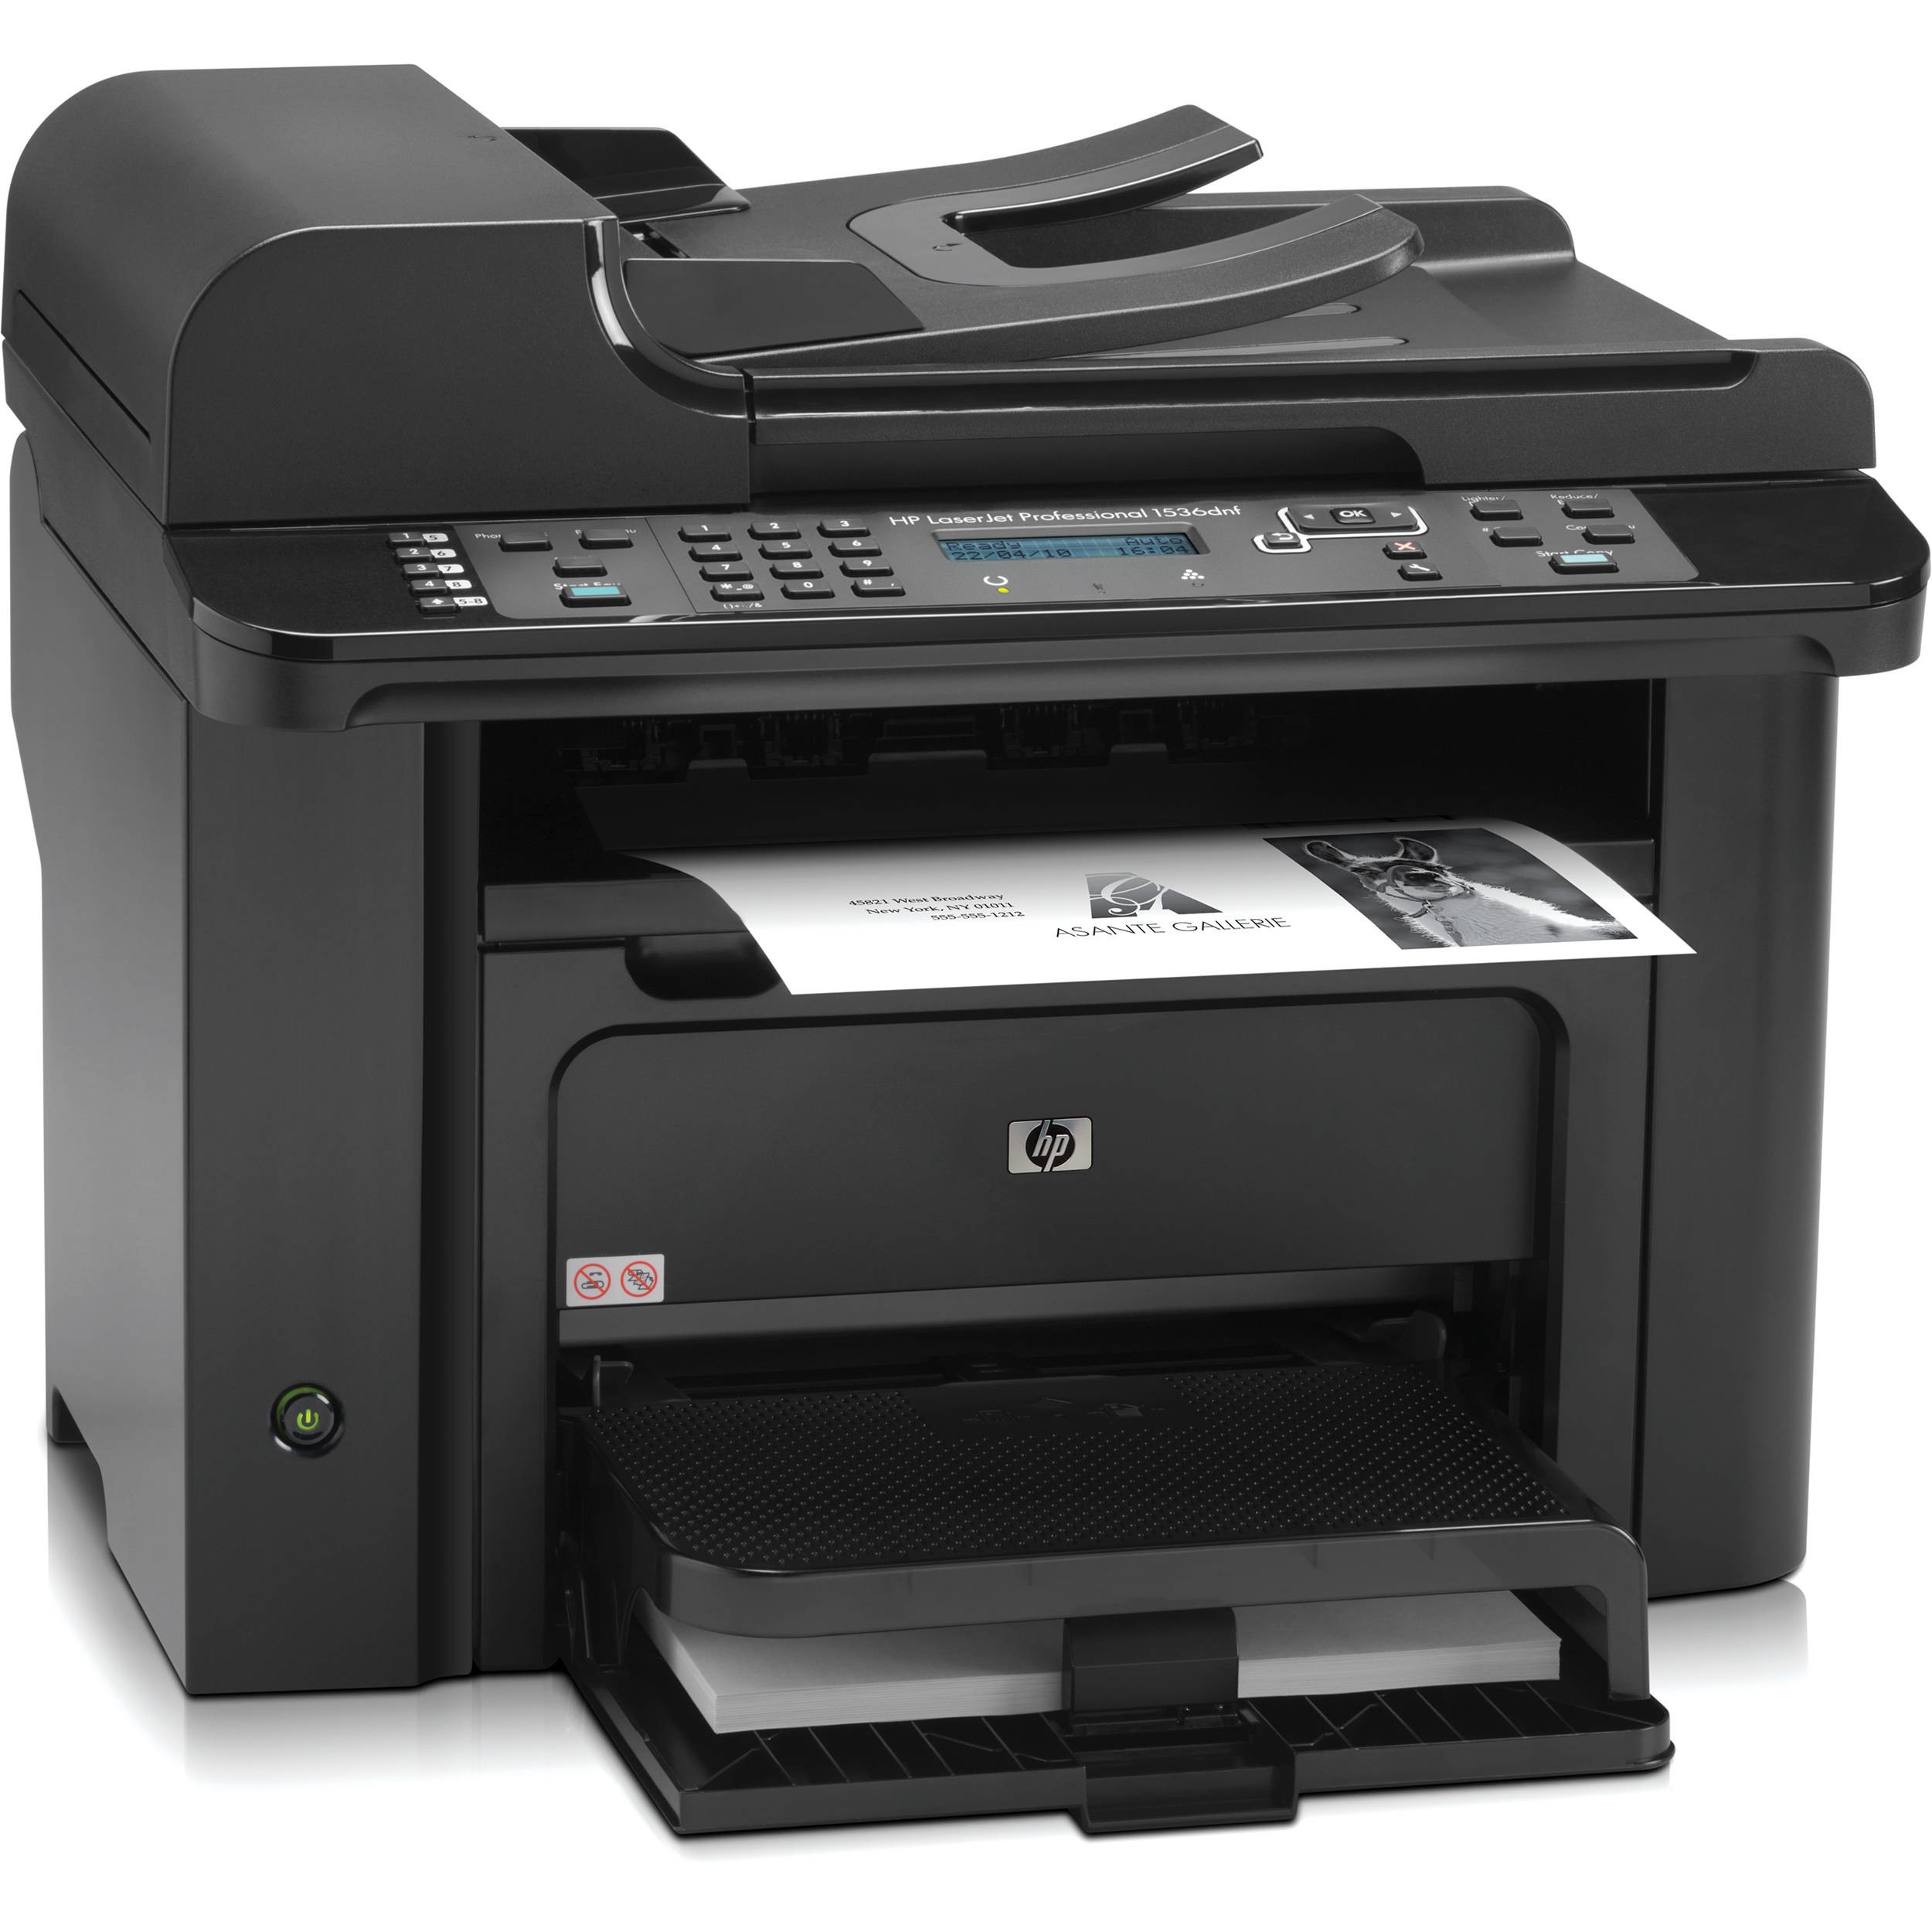 HP LASERJET M1536 MFP SERIES PCL 6 DRIVER DOWNLOAD